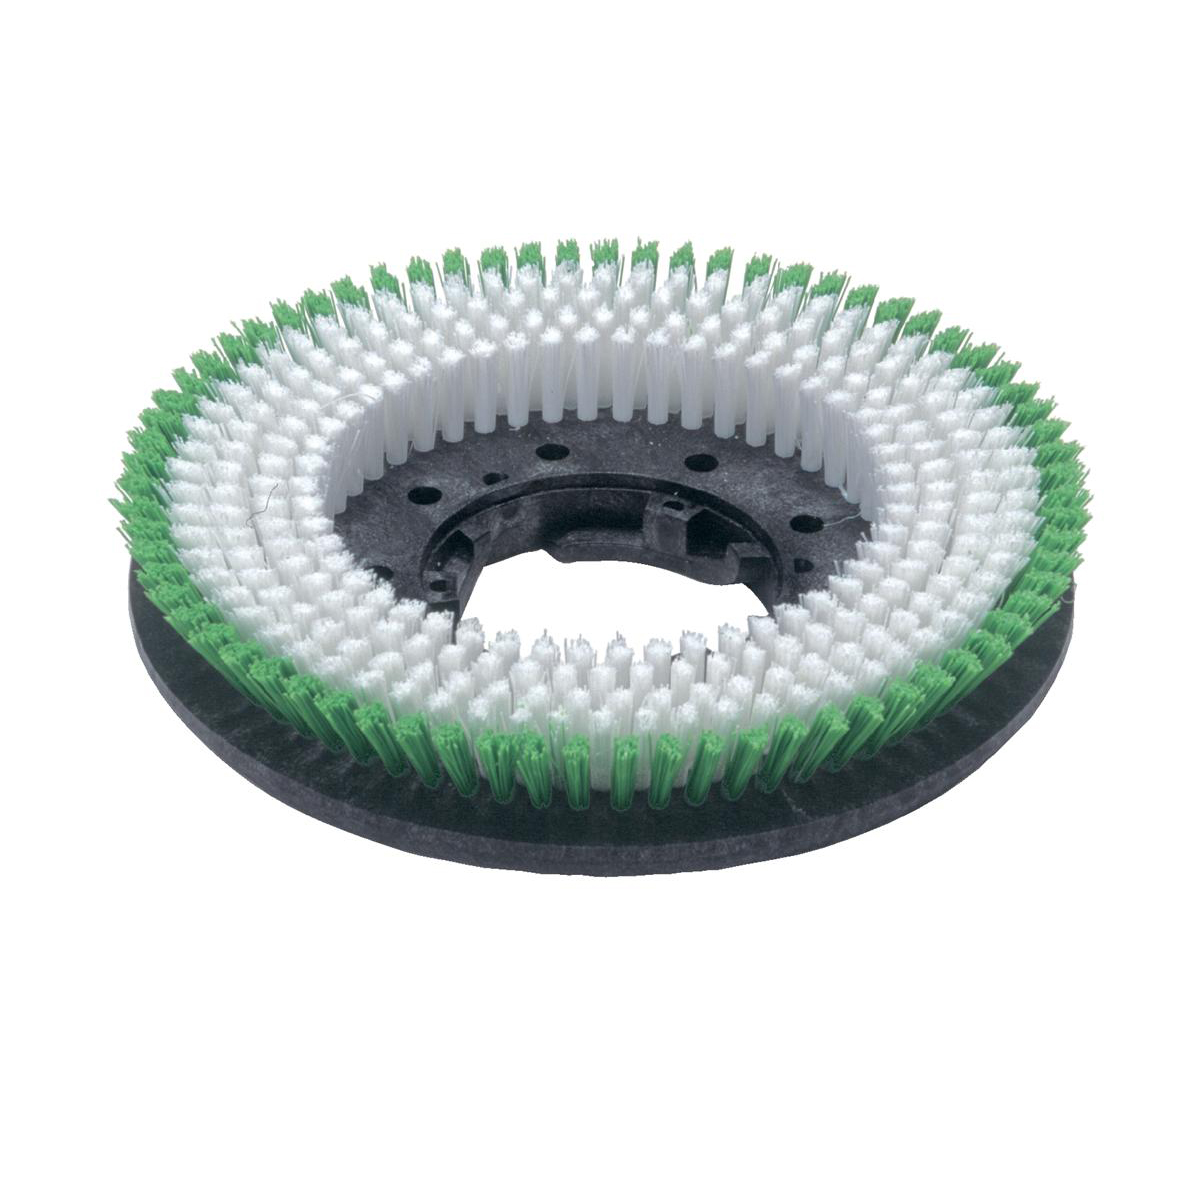 Numatic Polyscrub Brush for Floor Cleaner Ref 606033